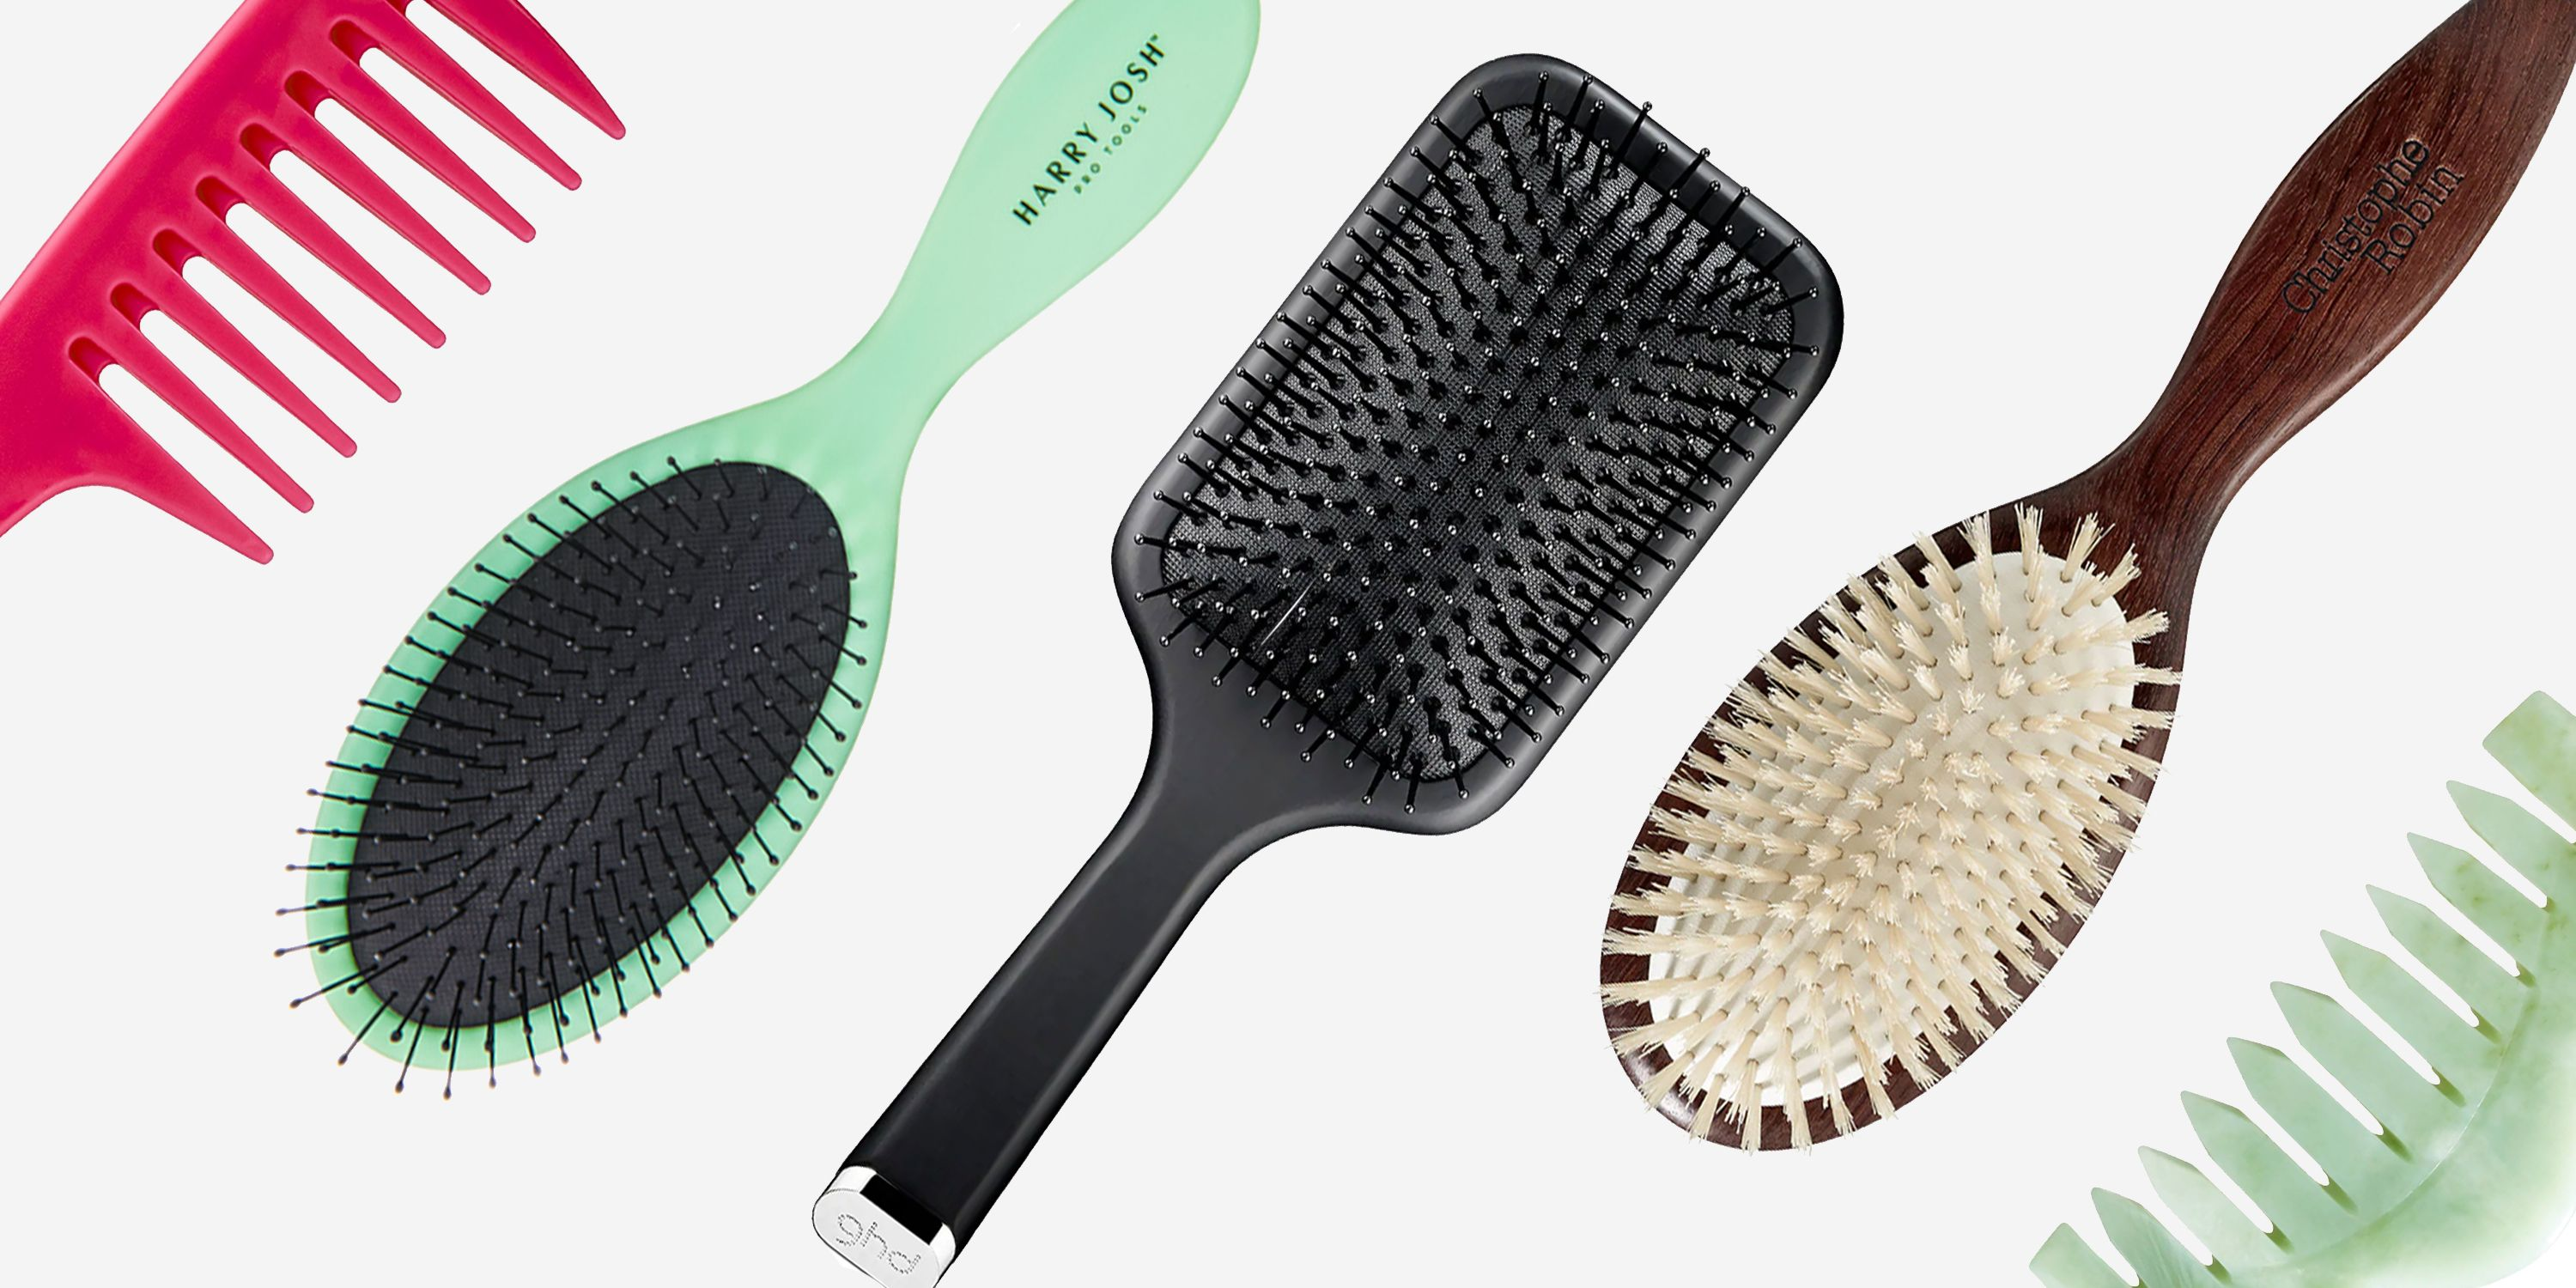 Best Hair Brushes 2019 - Best Round, Paddle, and Detangling